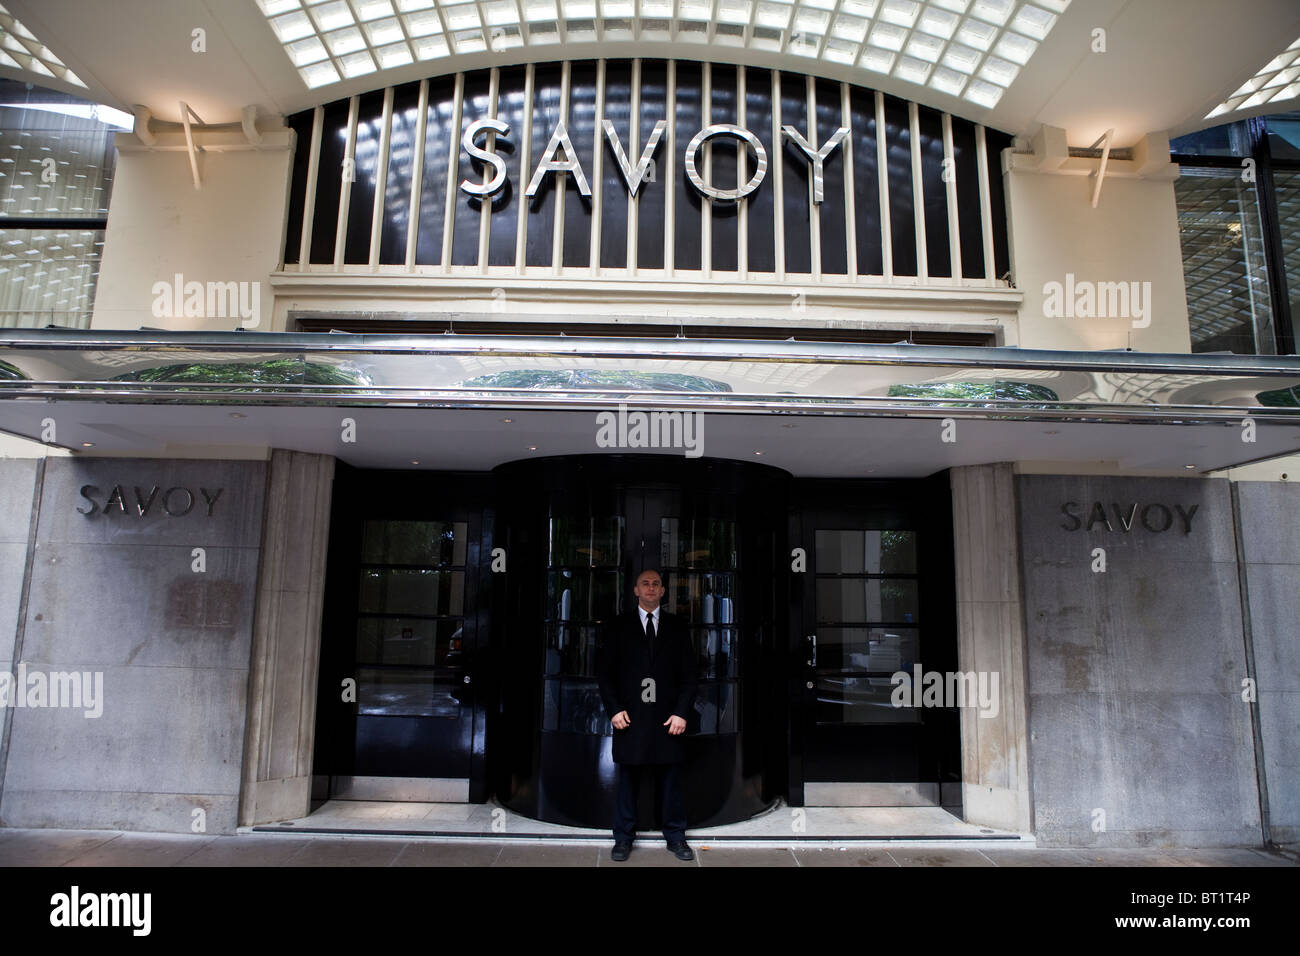 Savoy Hotel in London. Reopened in October 2010 after a complete refurbishment. Photos show the River entrance - Stock Image